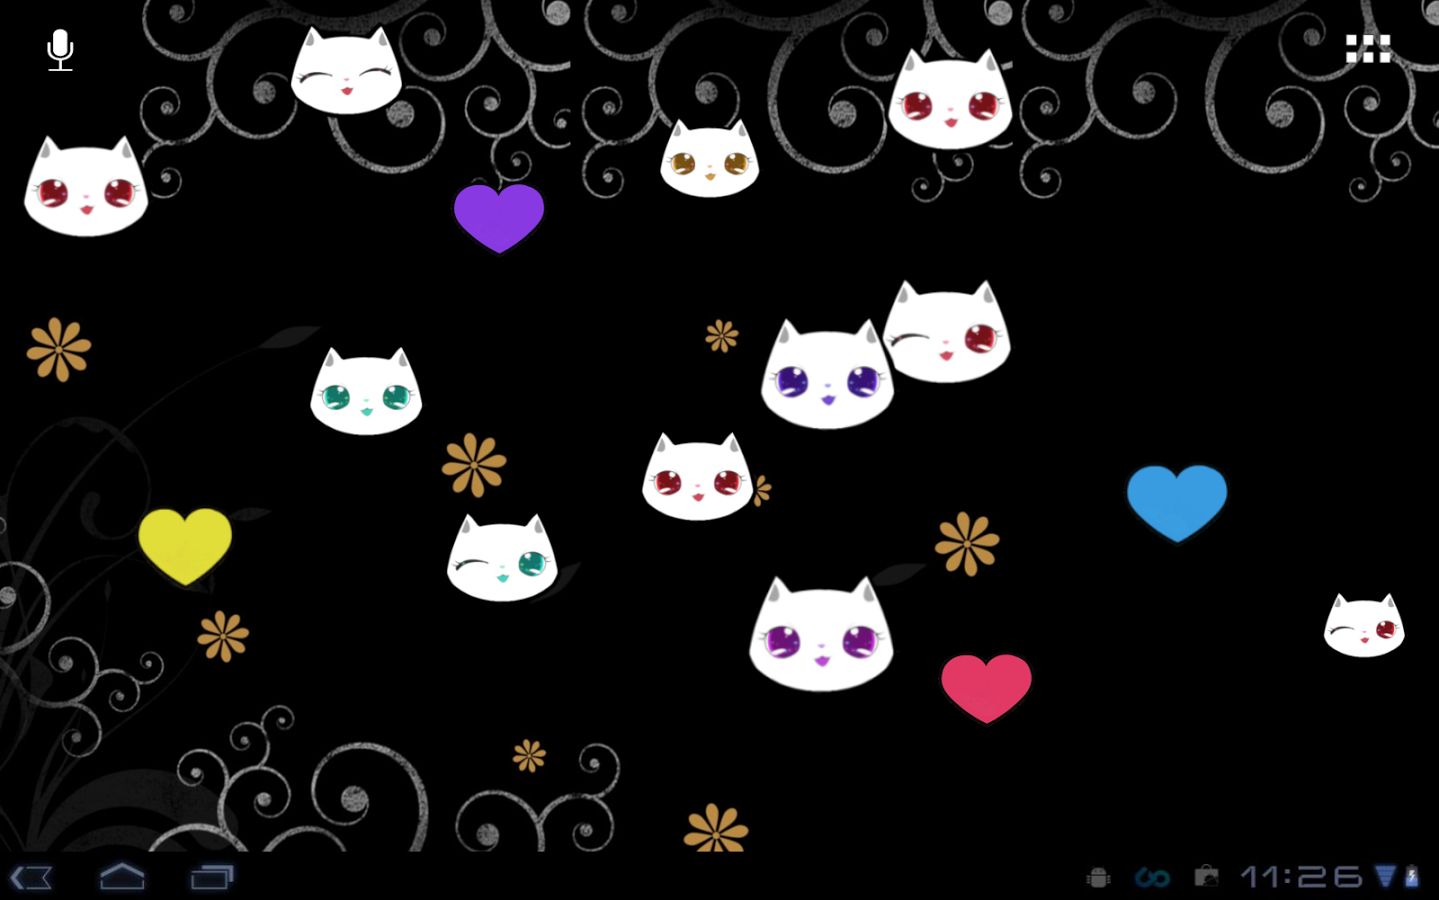 Lily Kitty Cool Live Wallpaper   Android Apps on Google Play 1439x900